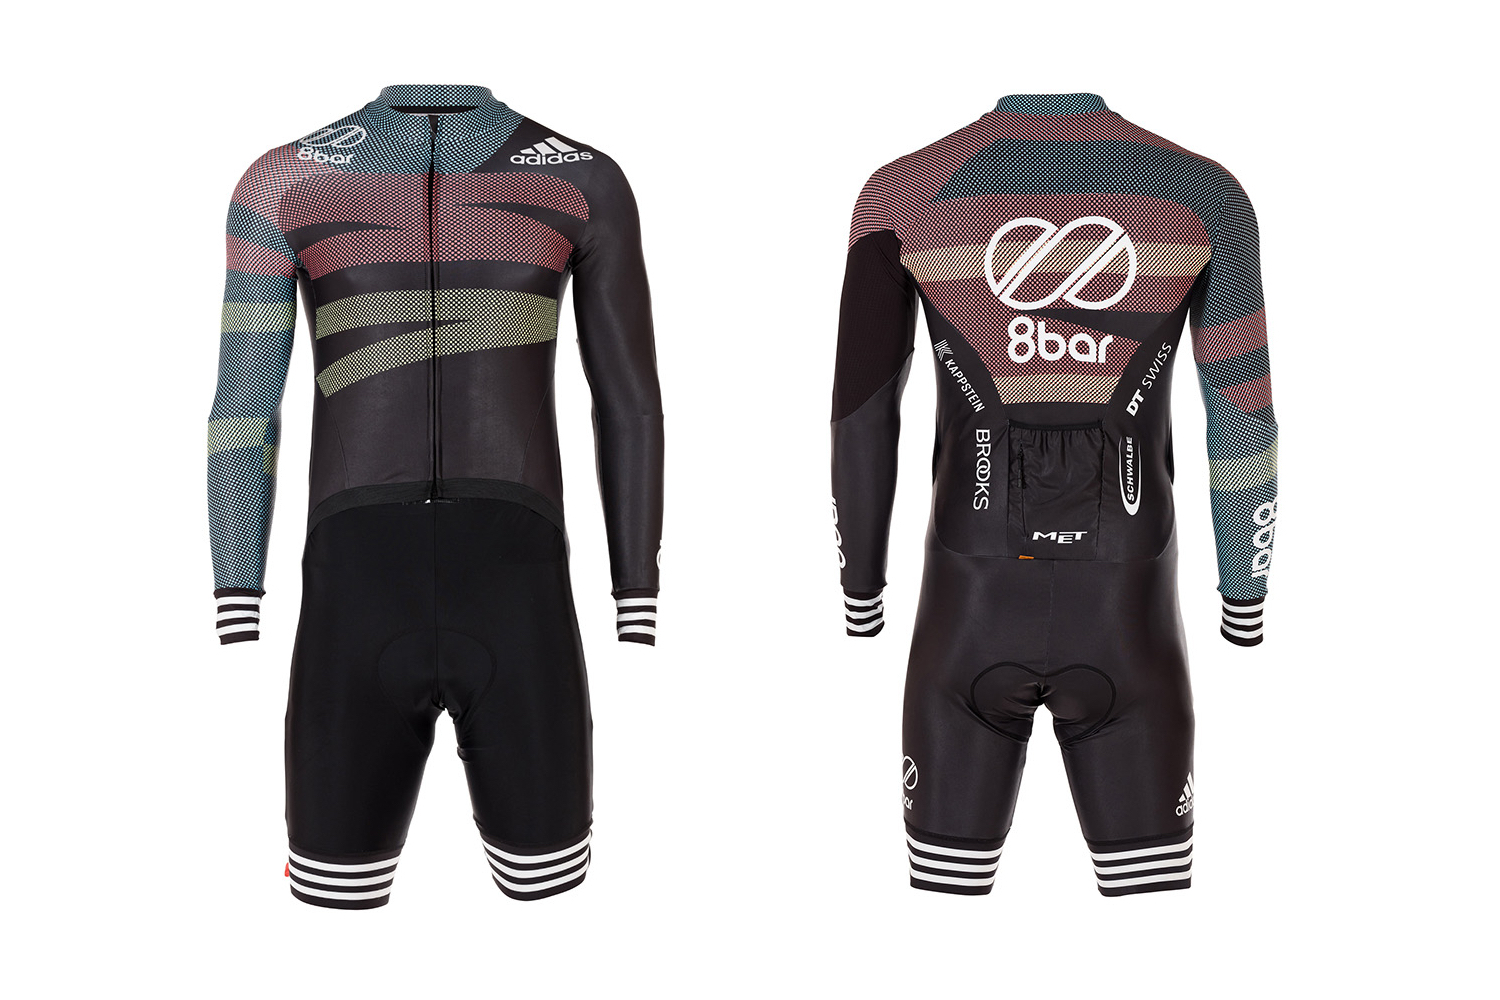 8bar team apparel skin suit - 8bar team apparel - available now!